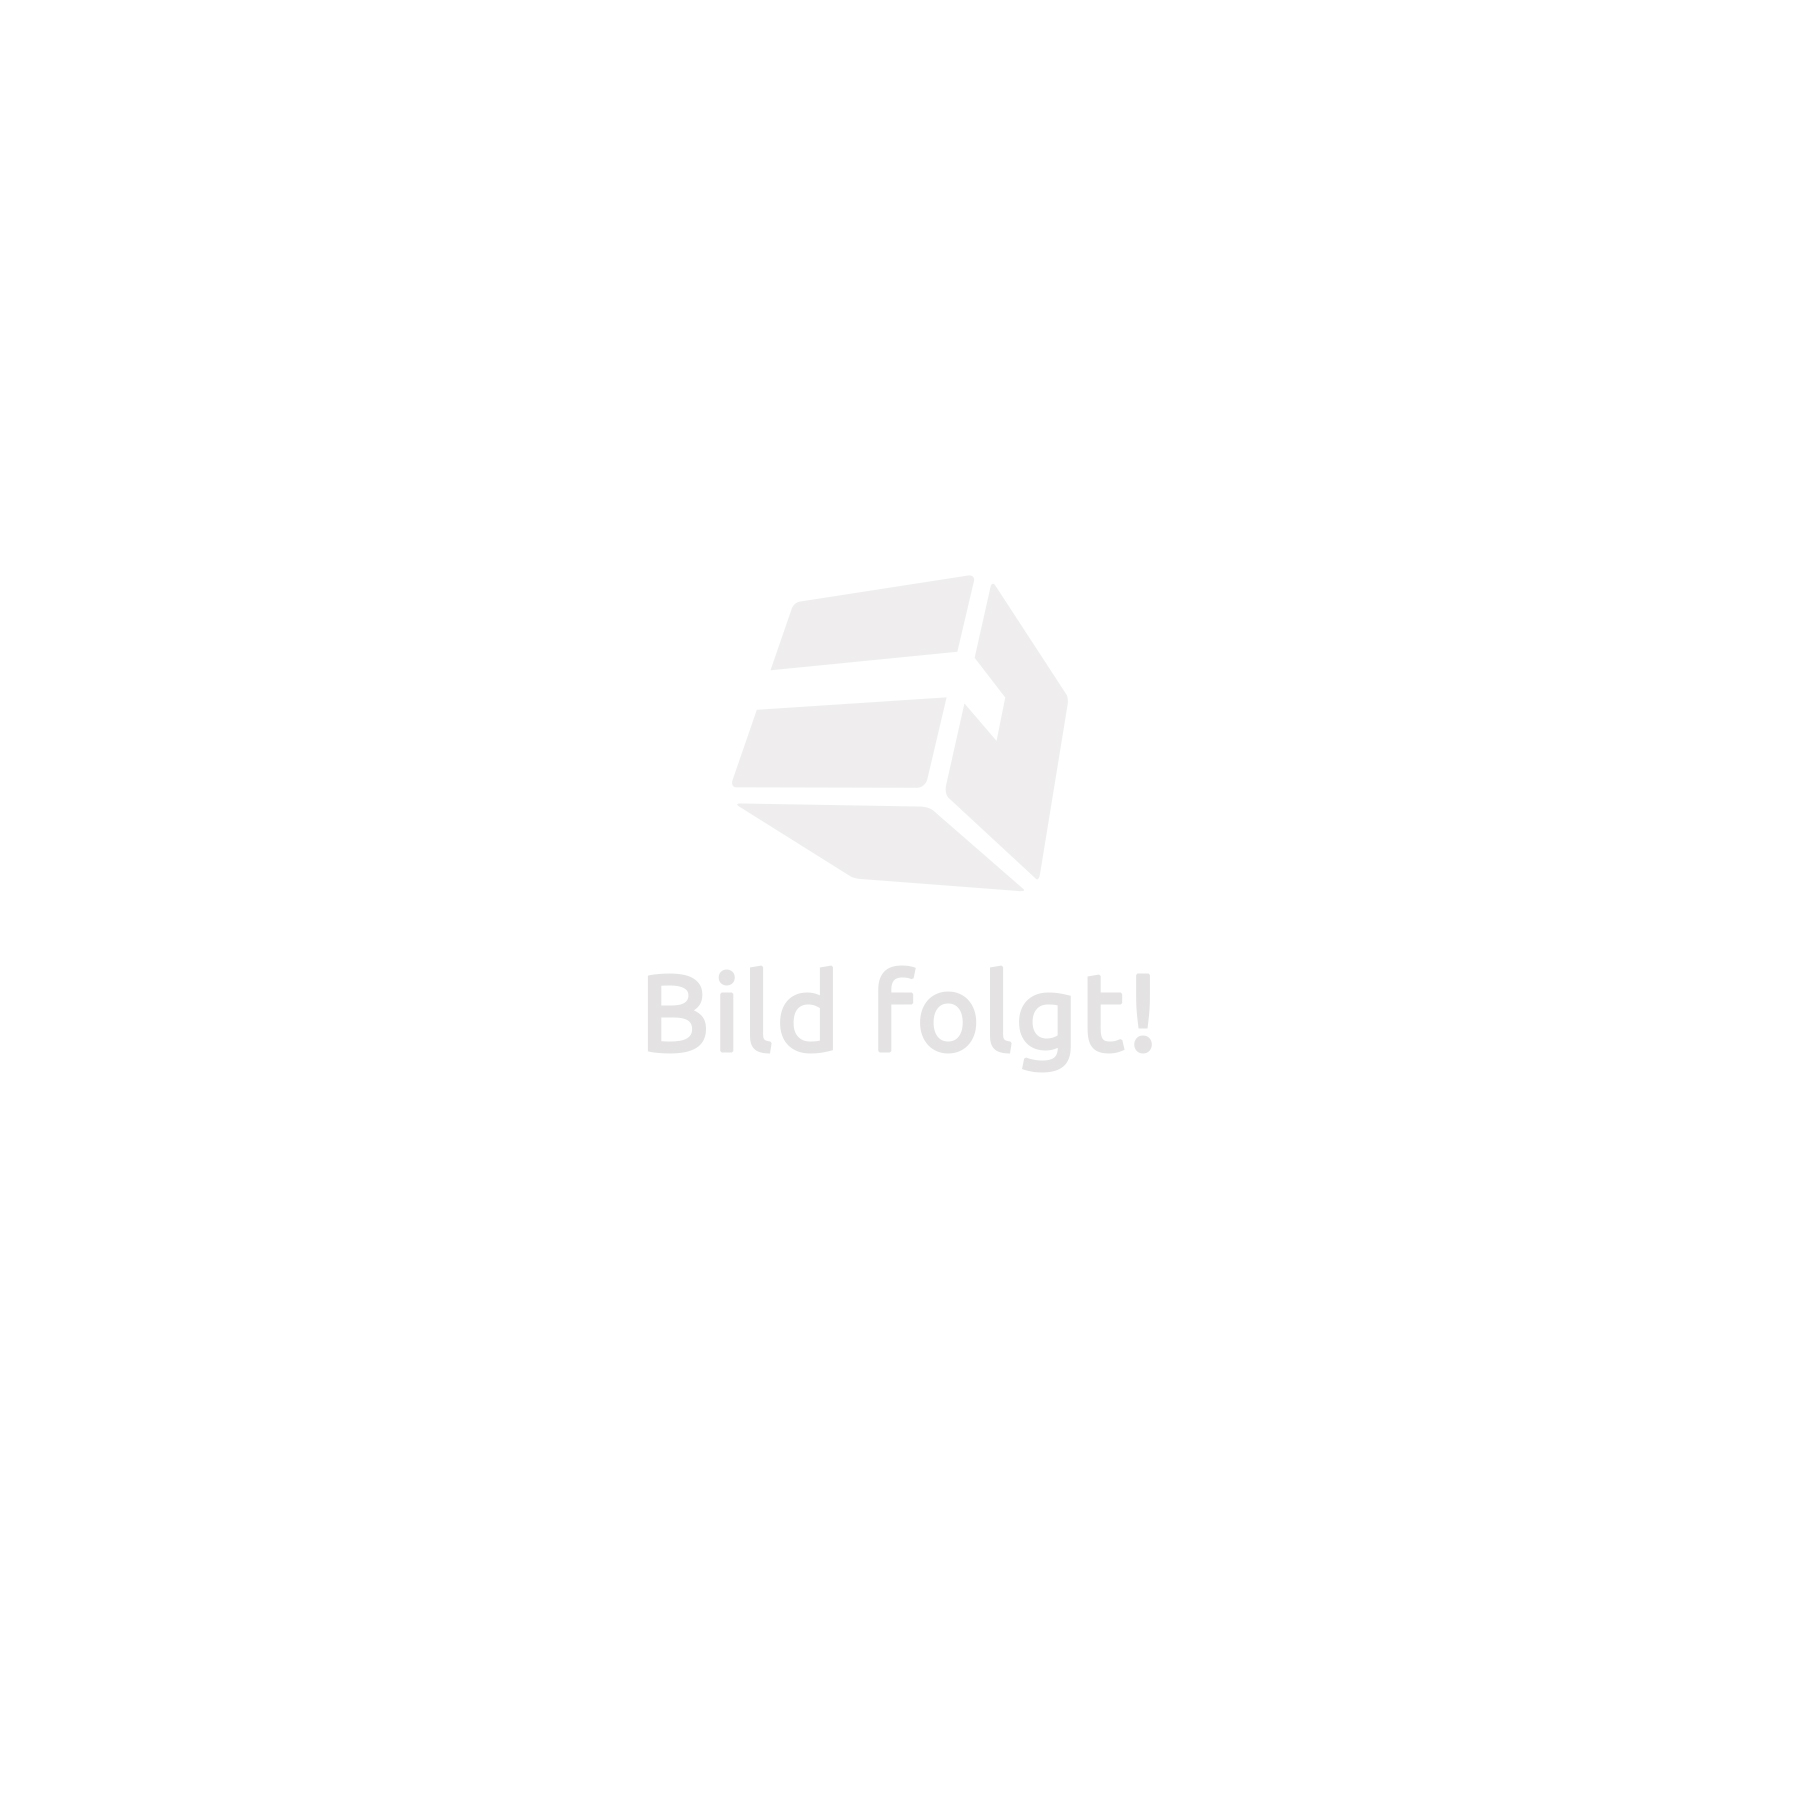 coffret pour 10 montres bo te montre bo tier rangement bijoux noir blanc ebay. Black Bedroom Furniture Sets. Home Design Ideas